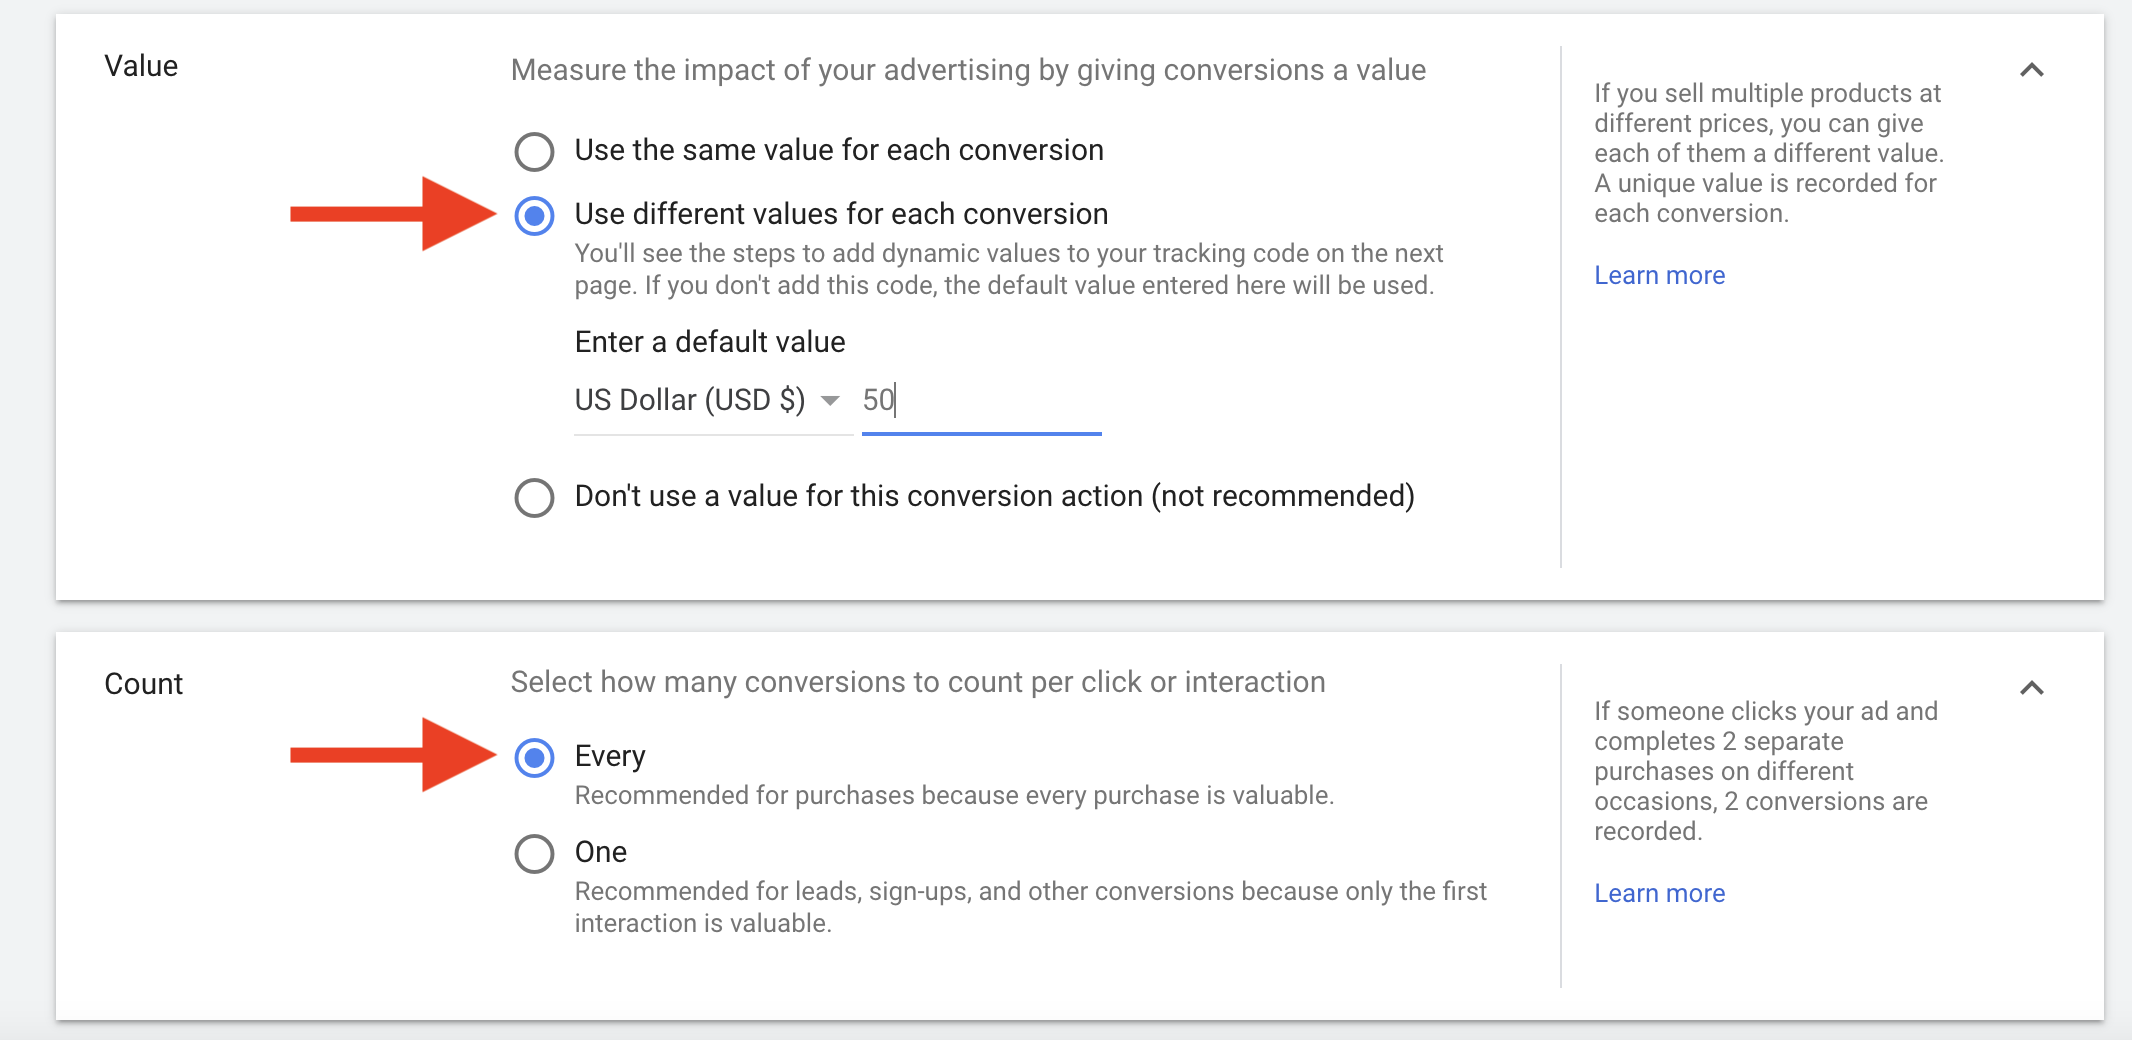 35 Enter in a value to each conversion